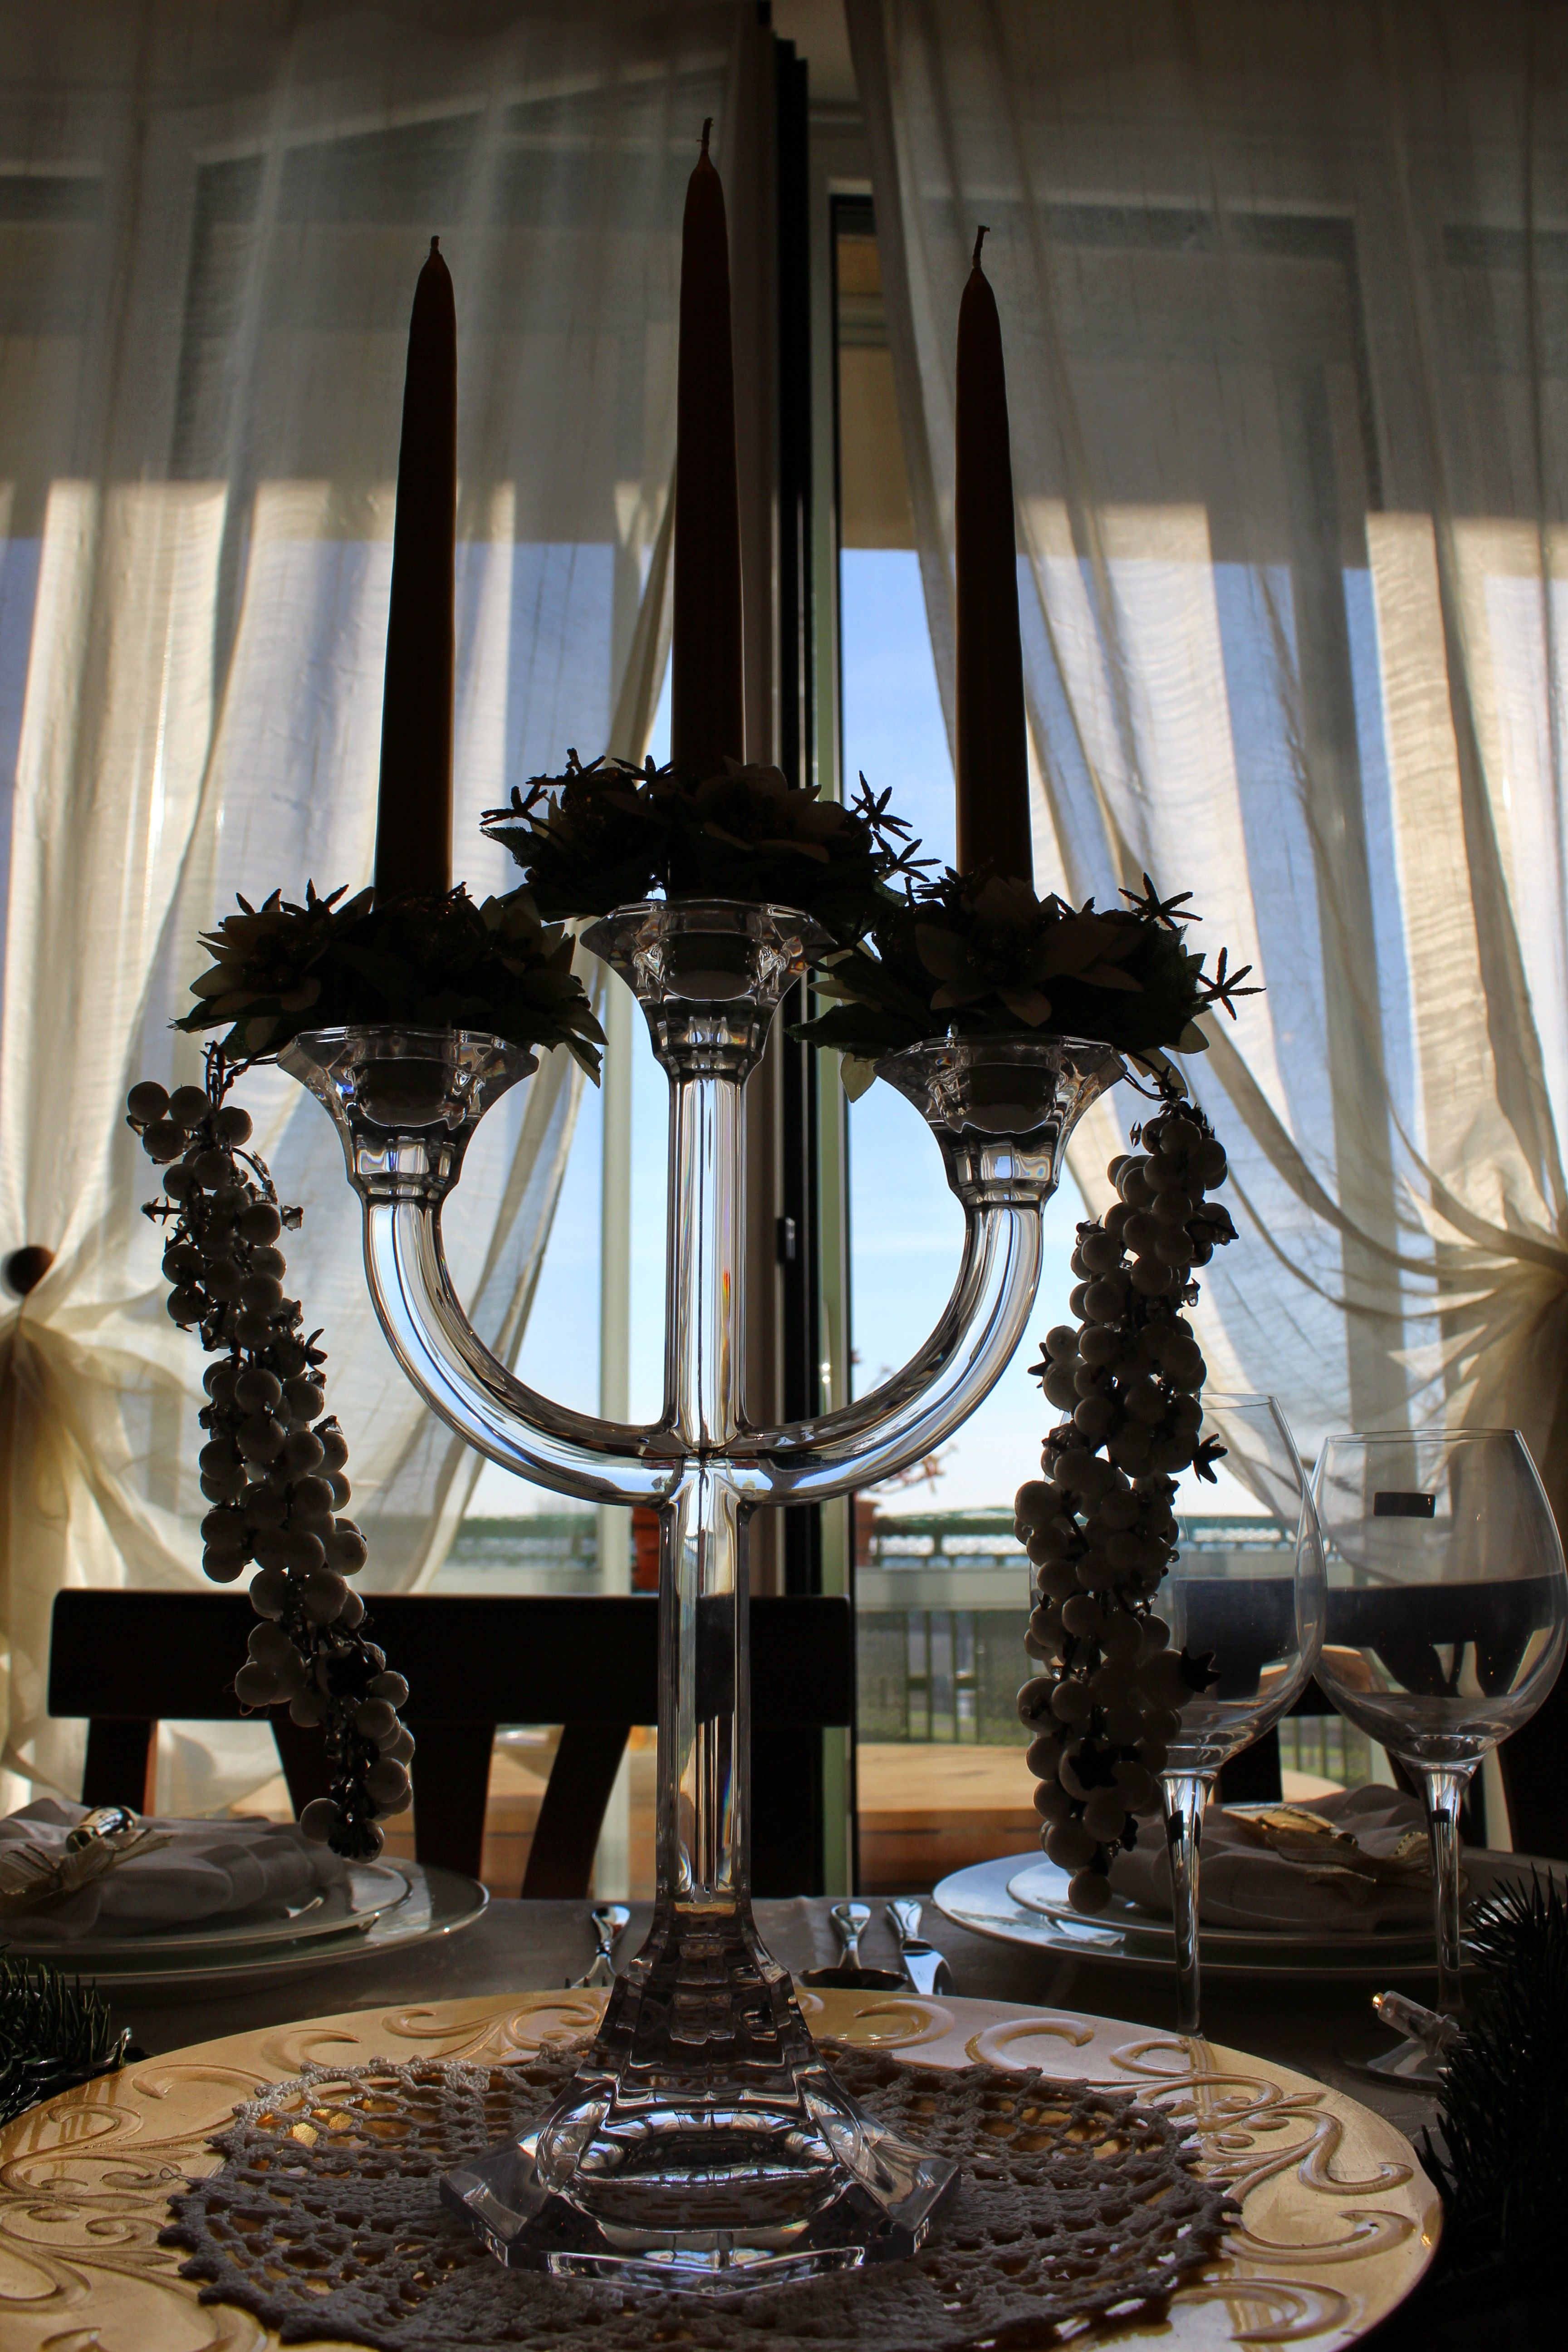 Xmas 2014 At Chiaras Crystal Chandelier Villeroy & Boch